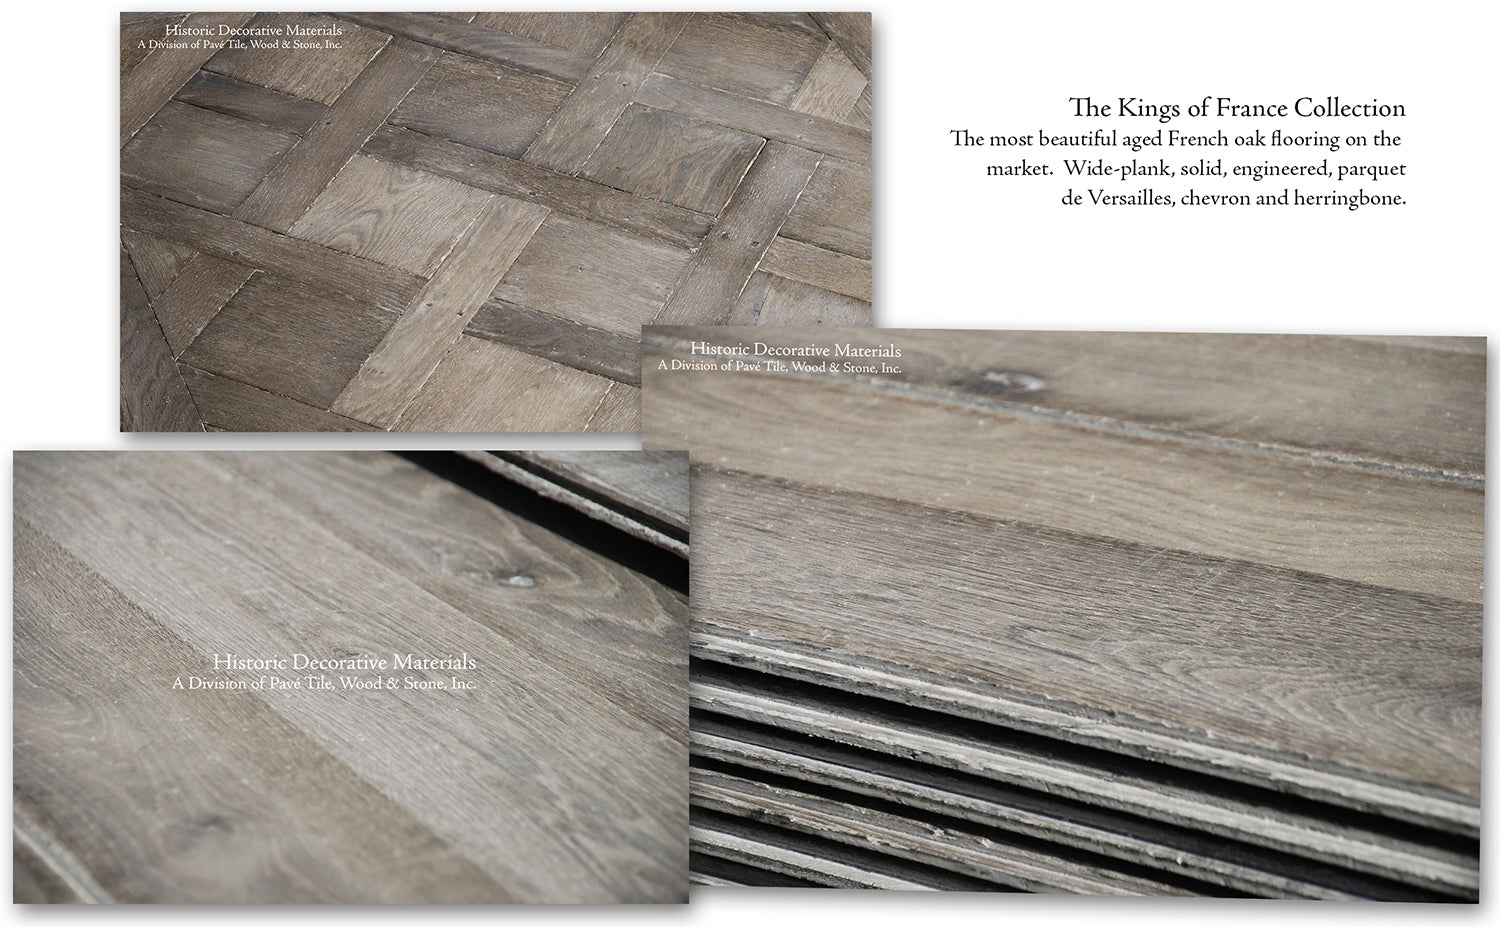 Interior designers choose for their interior designs reclaimed French limestone flooring, vintage and aged French limestone floors, French reclaimed terra cotta tile hexagons and hardwood French oak flooring for luxury interiors and farmhouse interior designs.